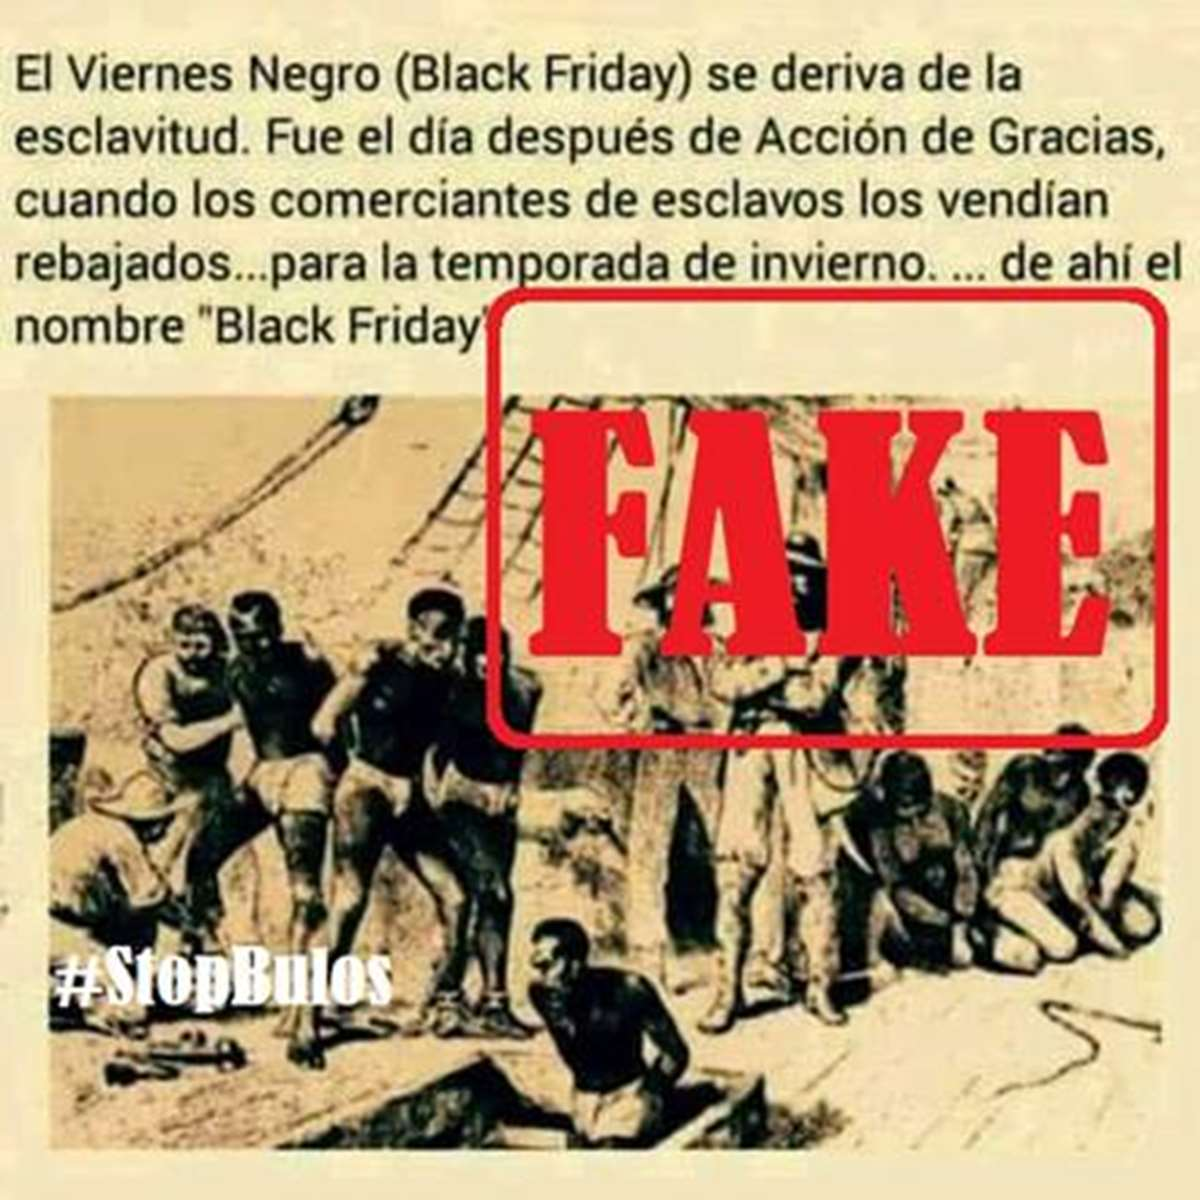 El fake más popular que corre por la red en las últimas horas